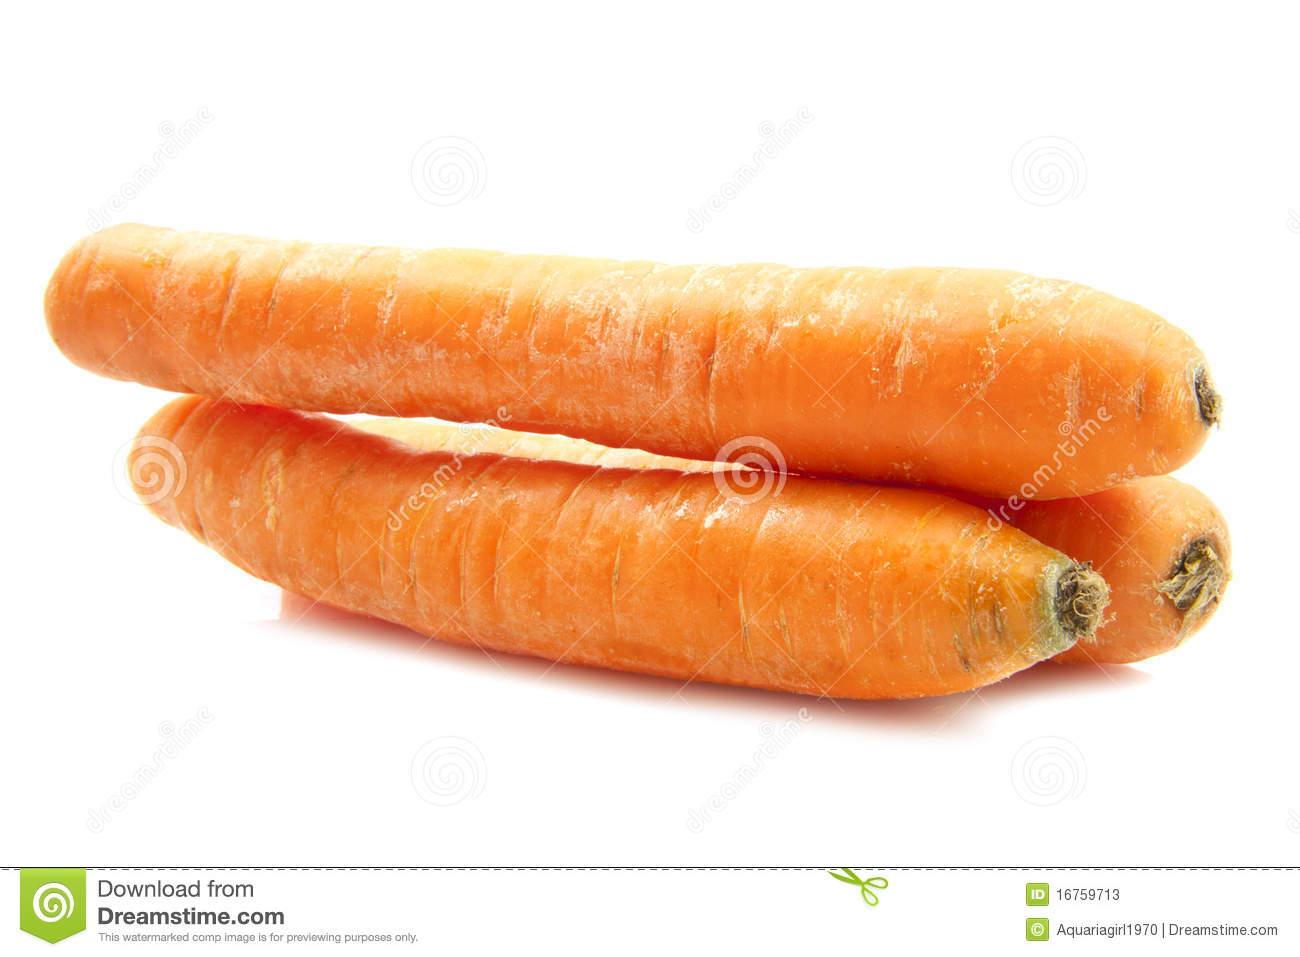 how to cook fresh carrots